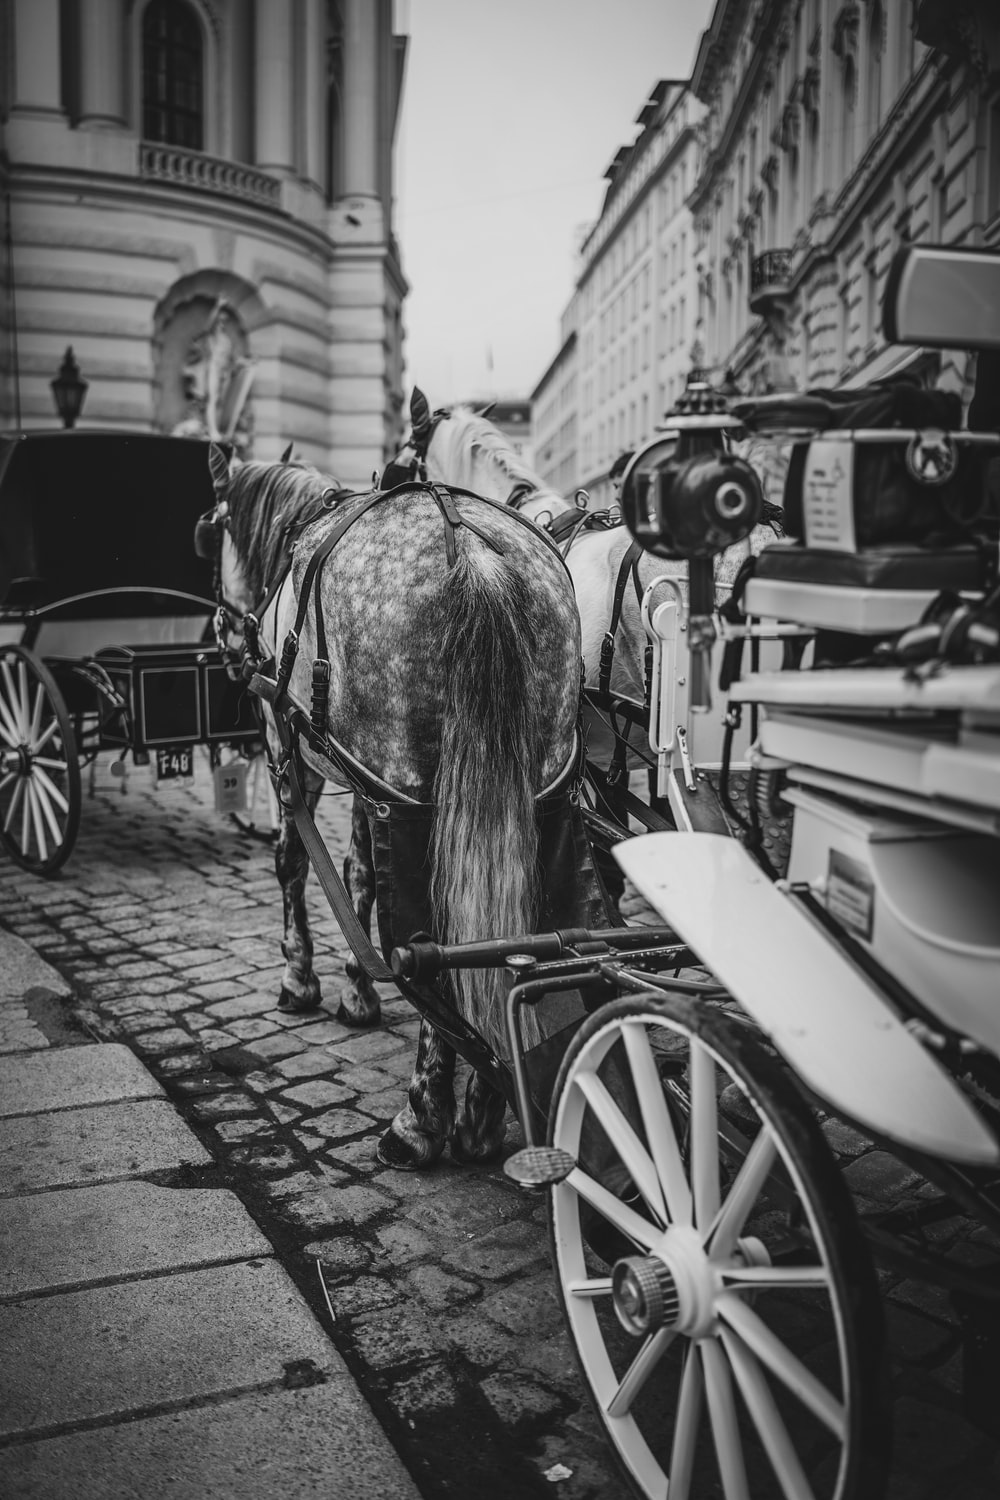 grayscale photography of horse and carriage near buildings